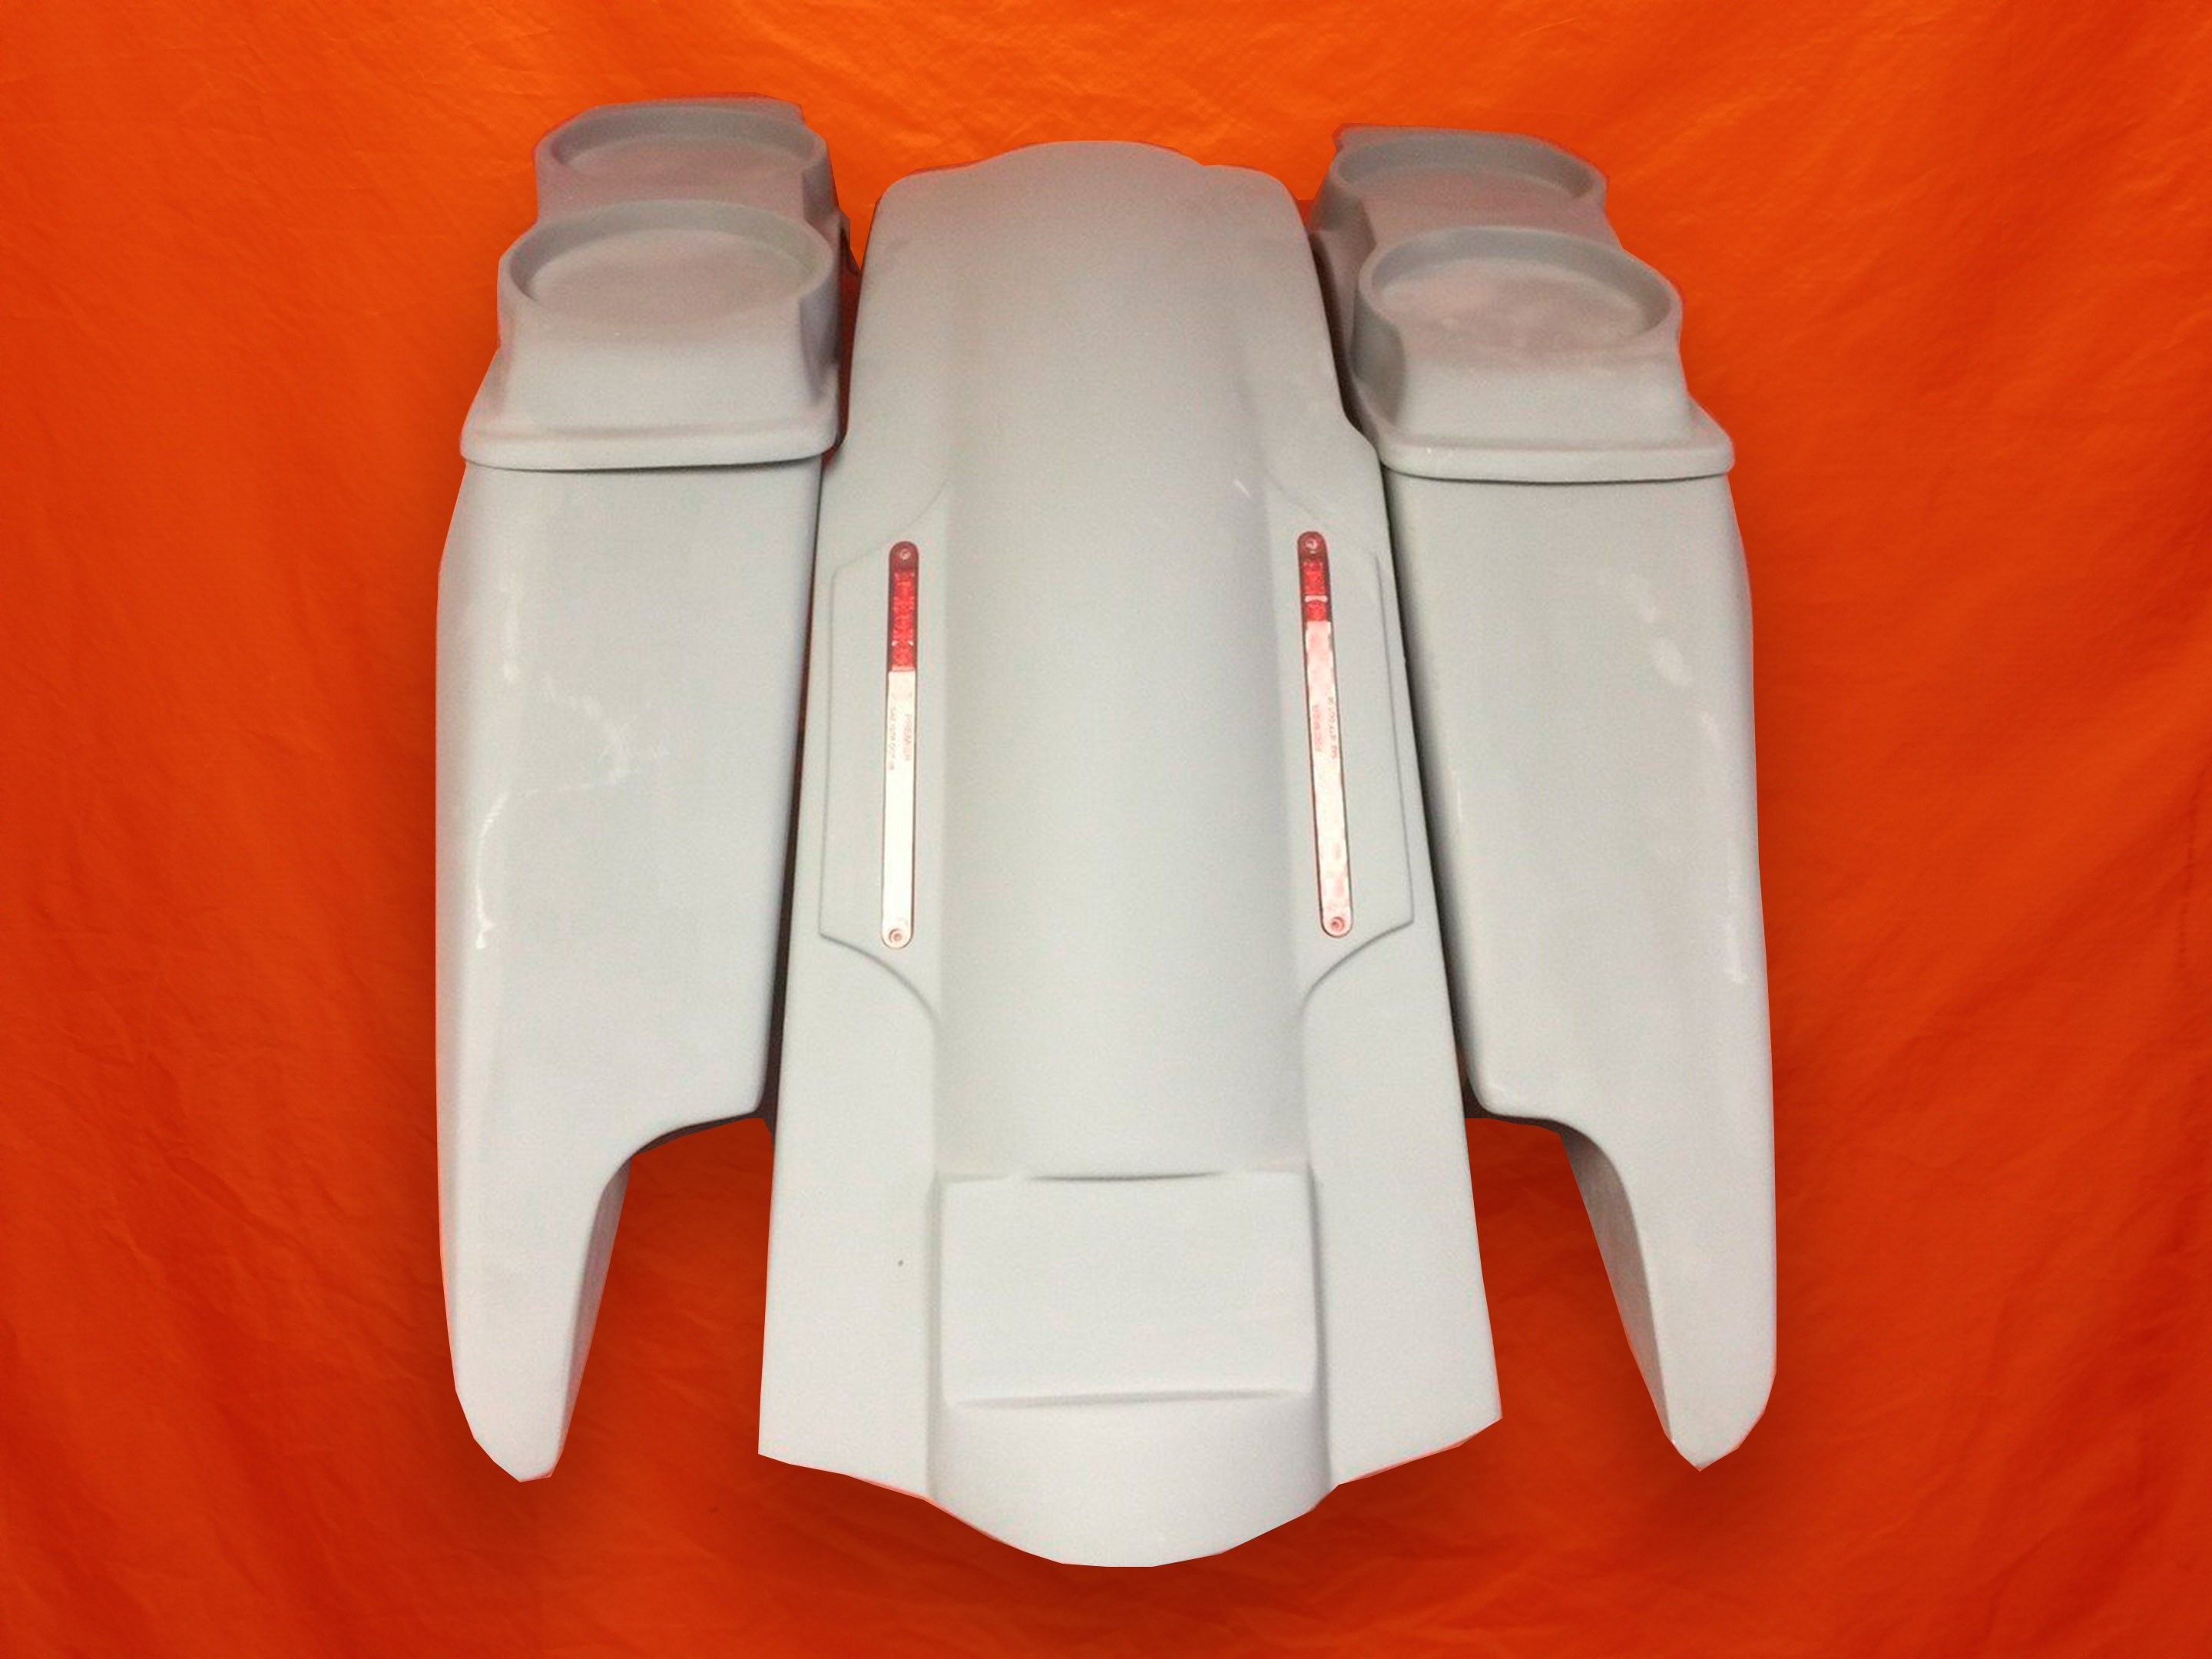 Harley-Davidson-Fifty-Five-Extended-Stretched-Saddlebags-Dual-CutOuts-Dual-6-5-inch-Lids-LED-Fender-Kit